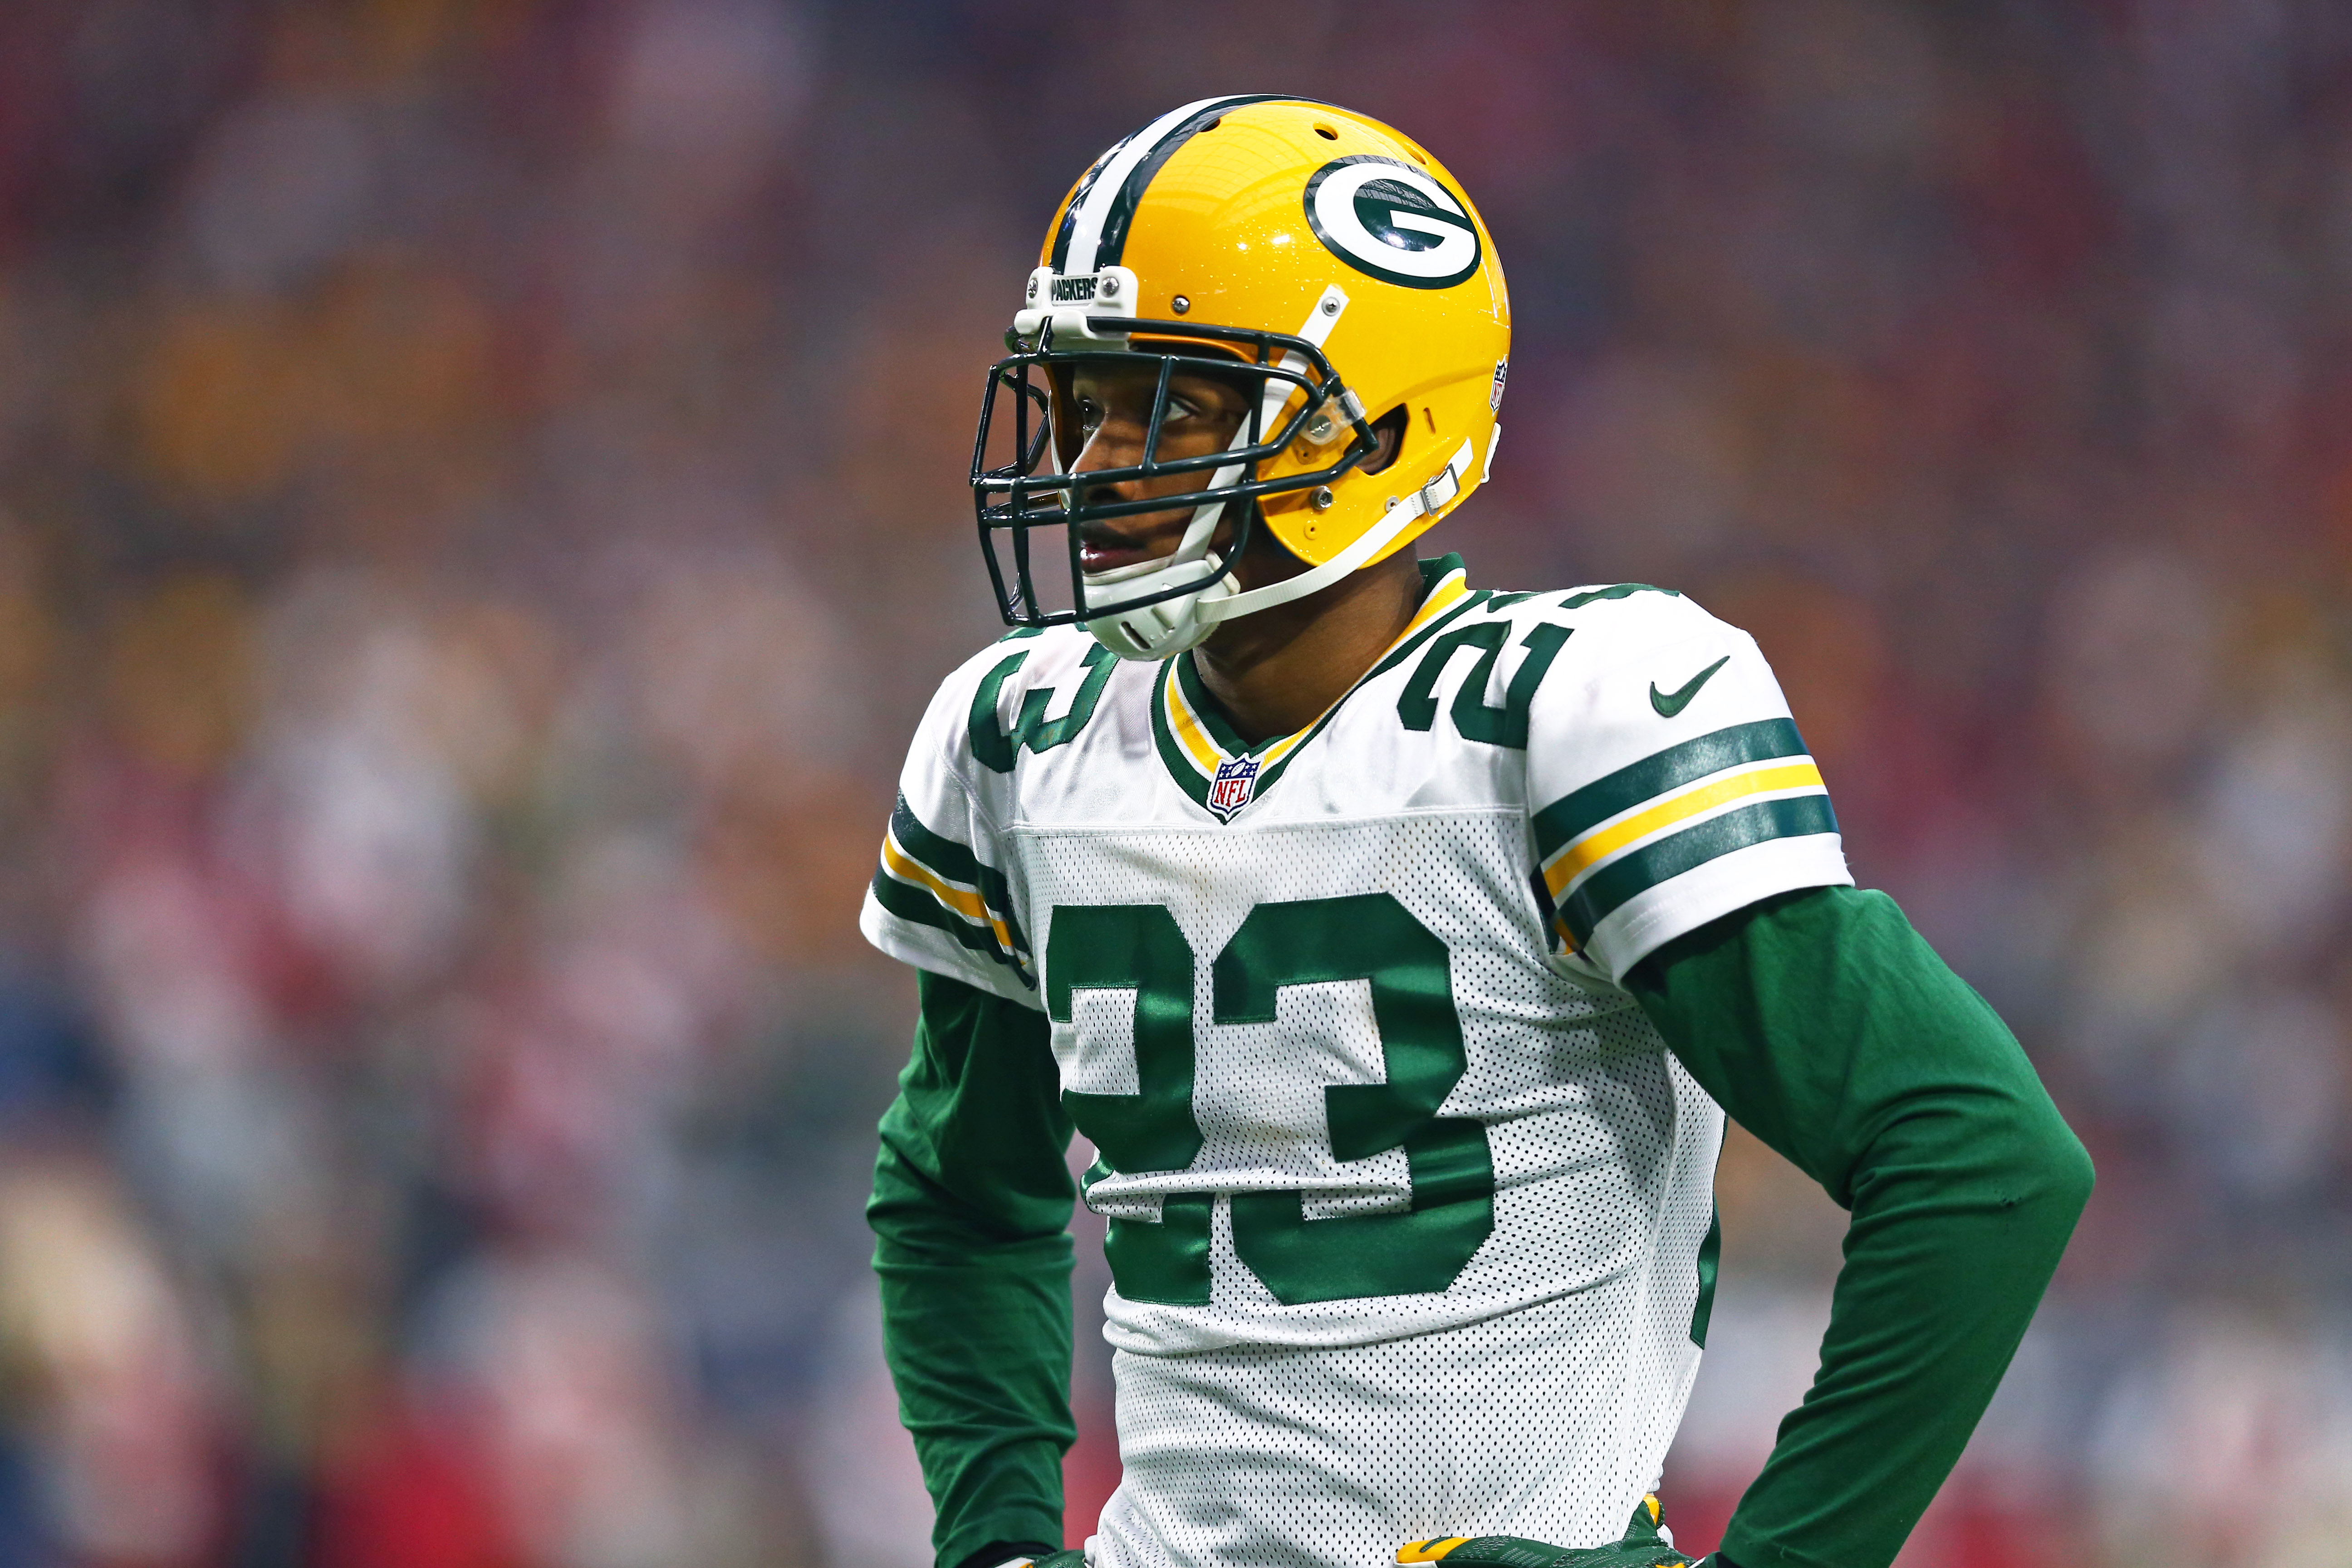 Cheap NFL Jerseys Sale - The Sky is the Limit for Damarious Randall | Cheesehead TV